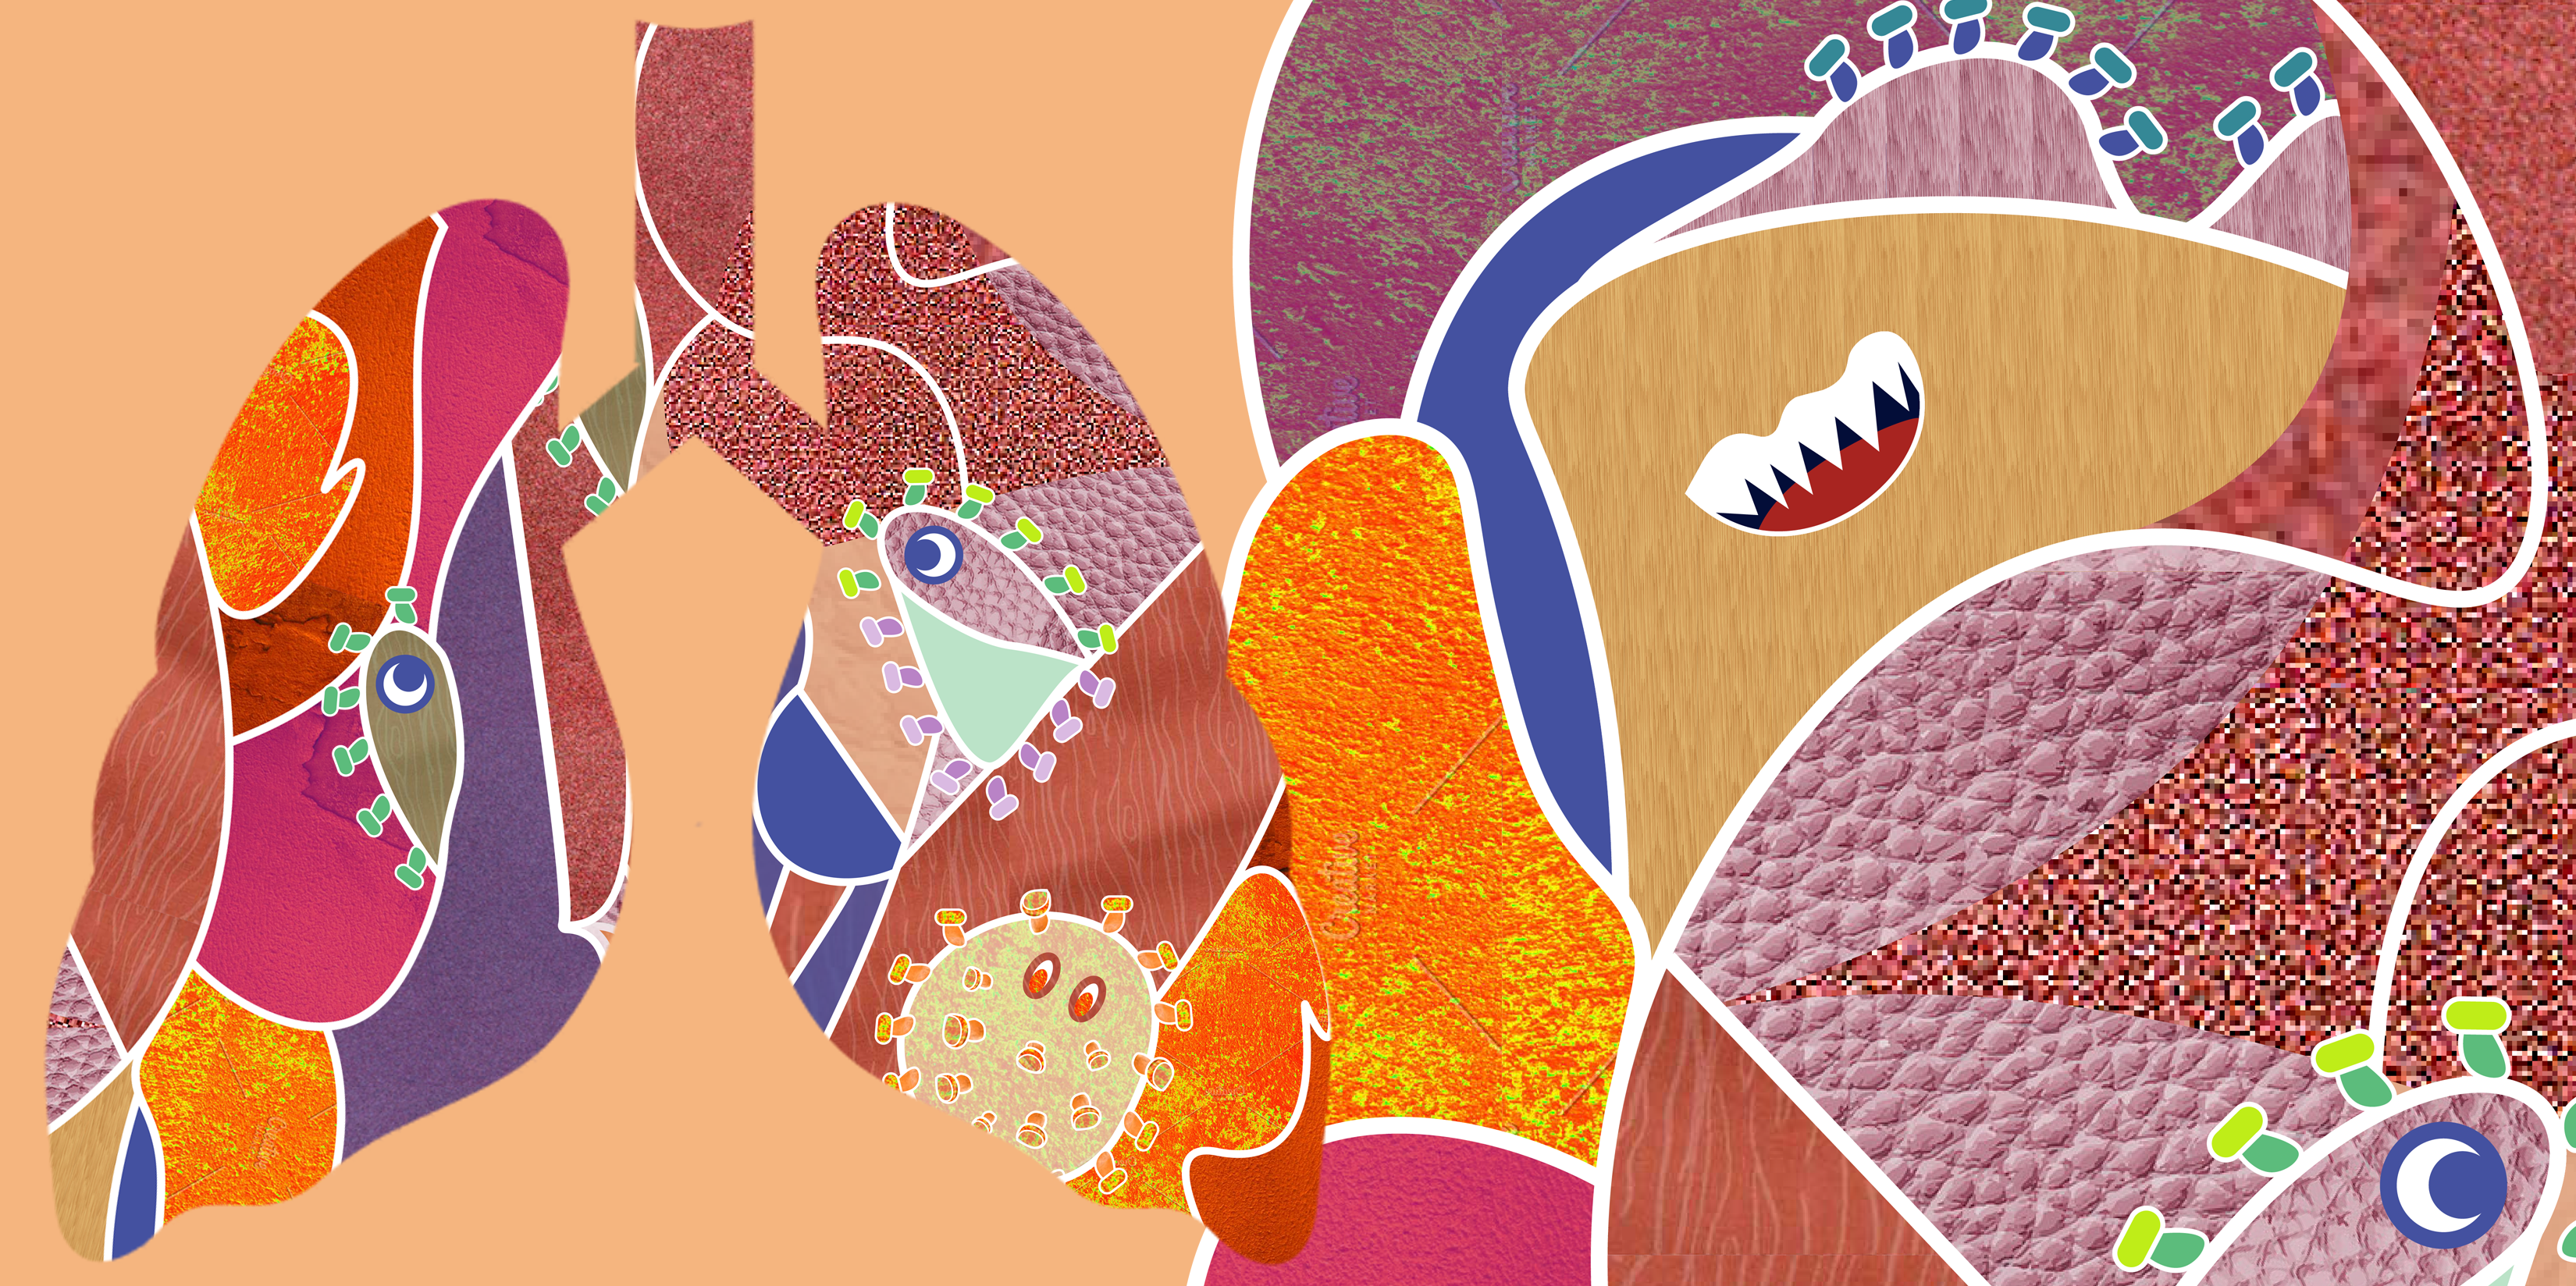 Coronavirus-inspired illustration with warm palette and cartoon styled illustrations with lung outline by Emma Blake Morsi